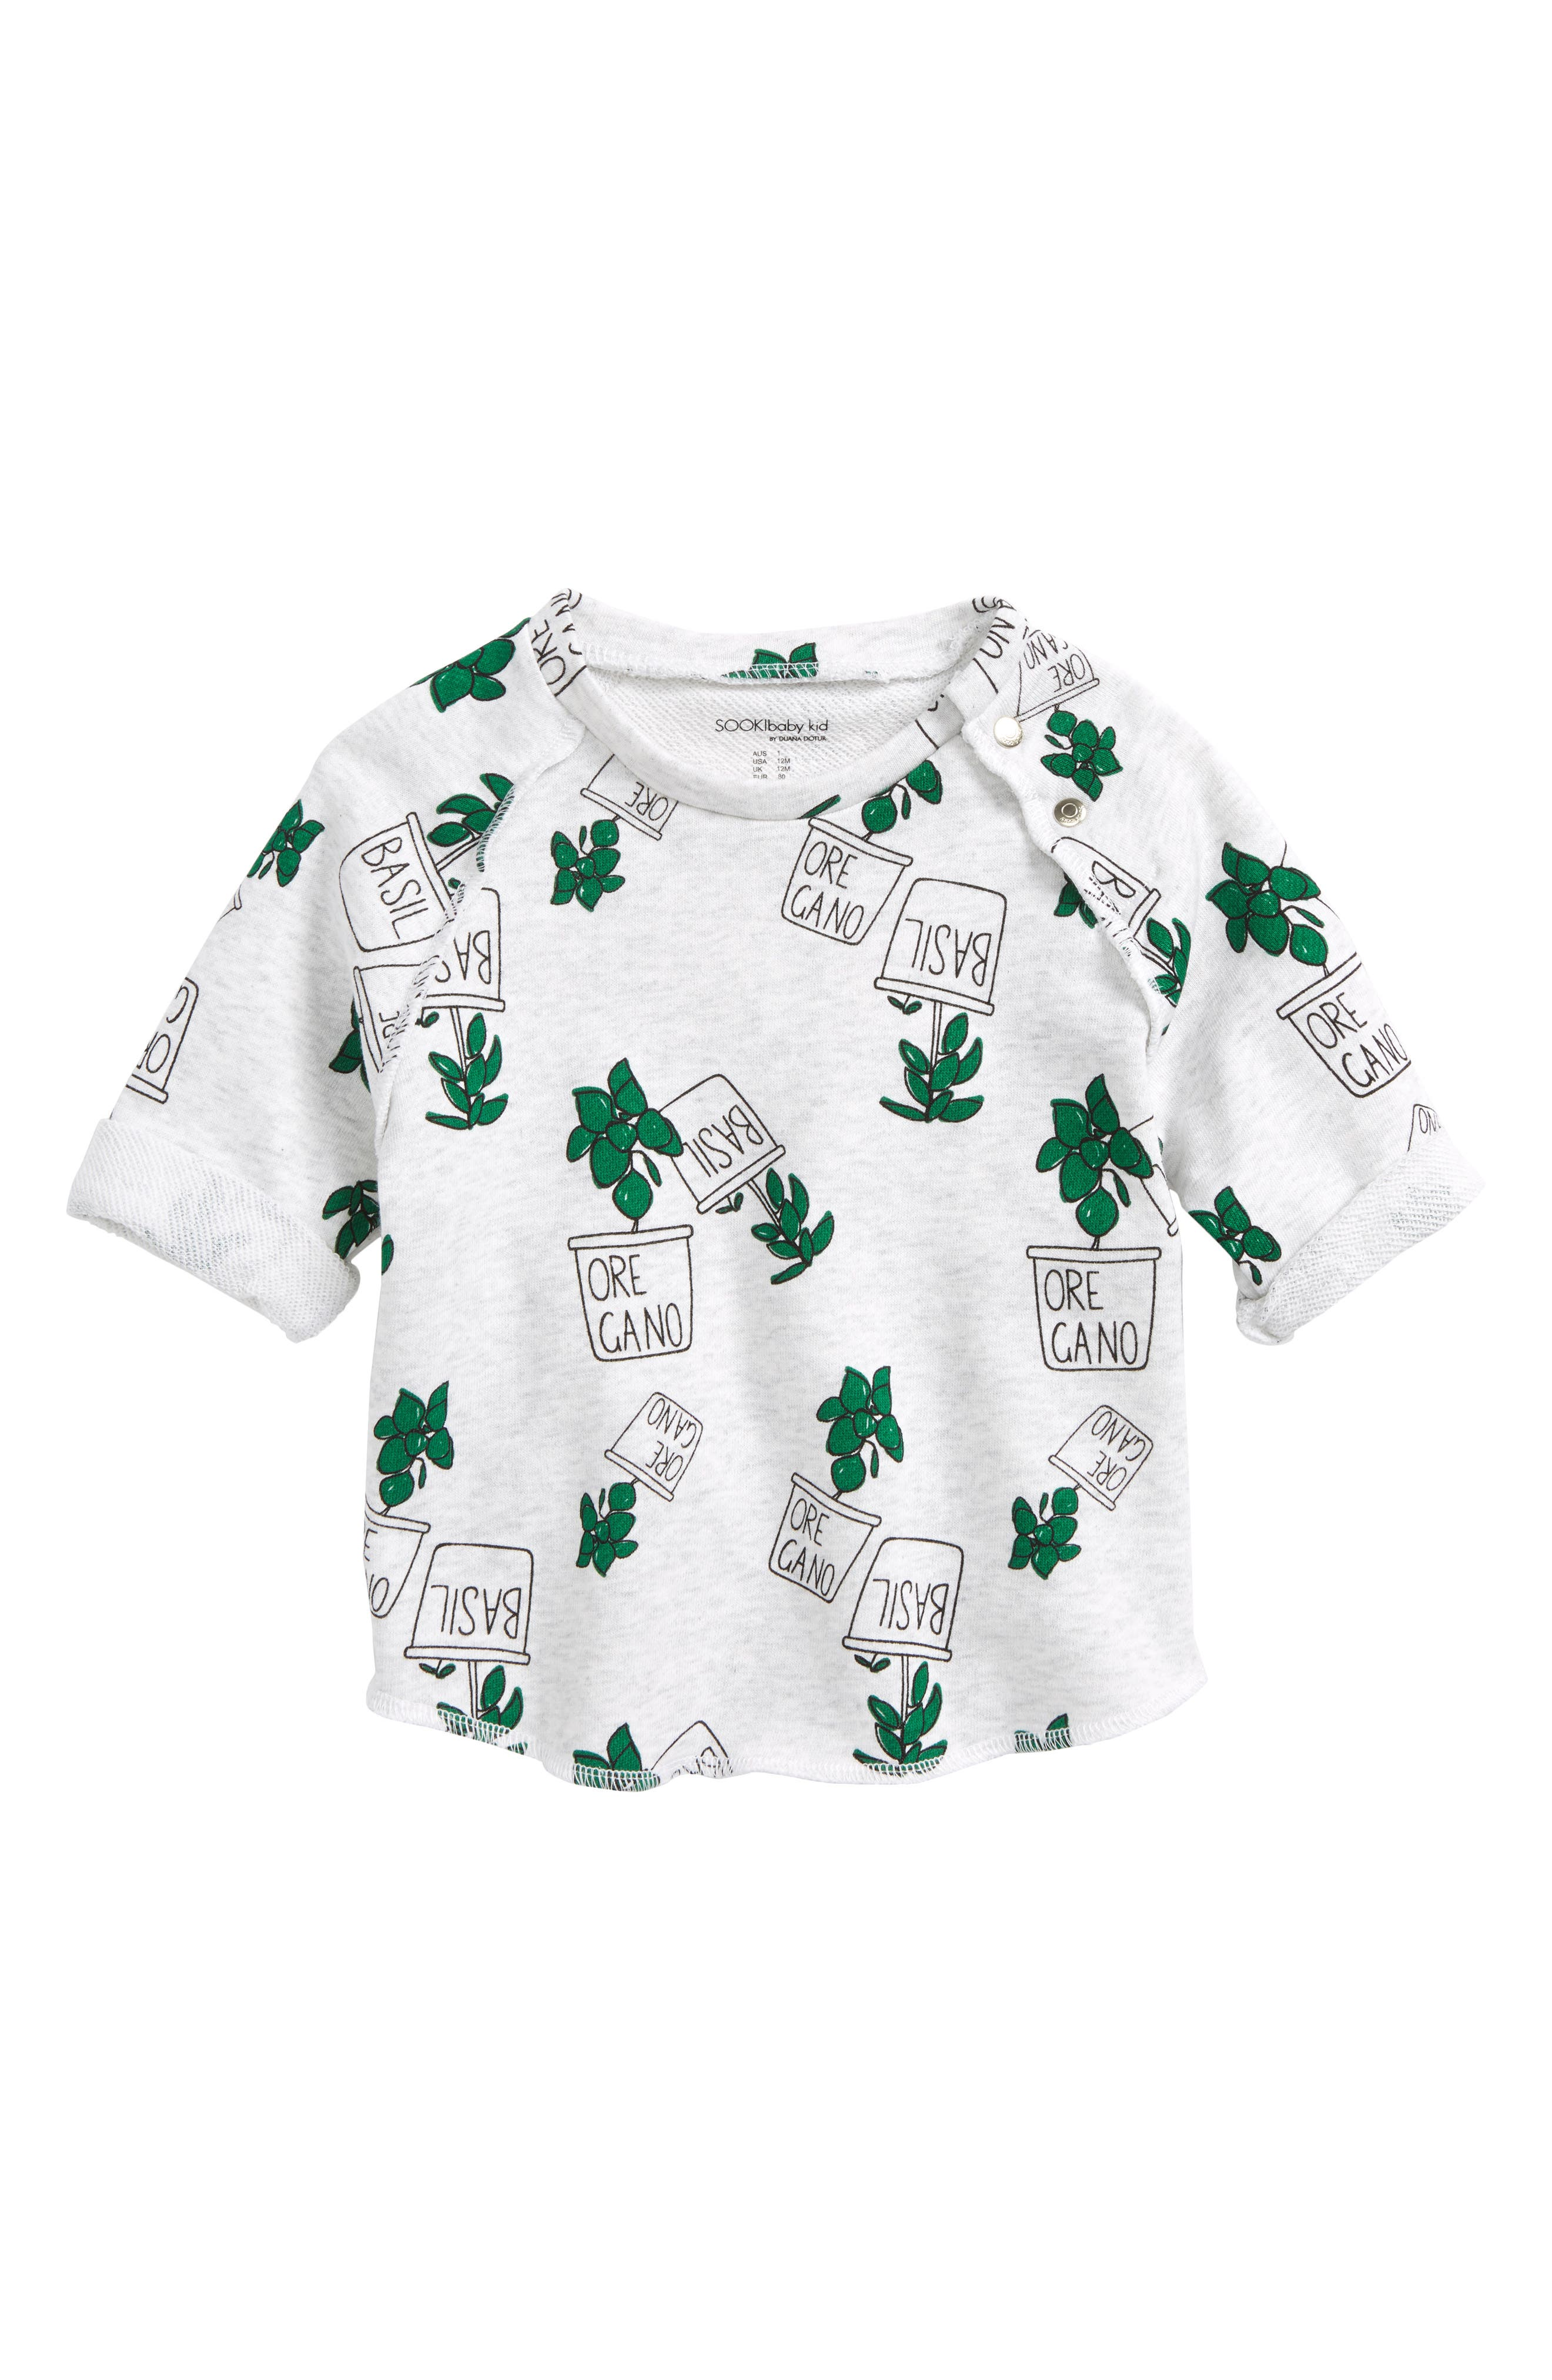 SOOKIbaby Fresh Herbs Relaxed Fit Sweatshirt (Baby & Toddler)